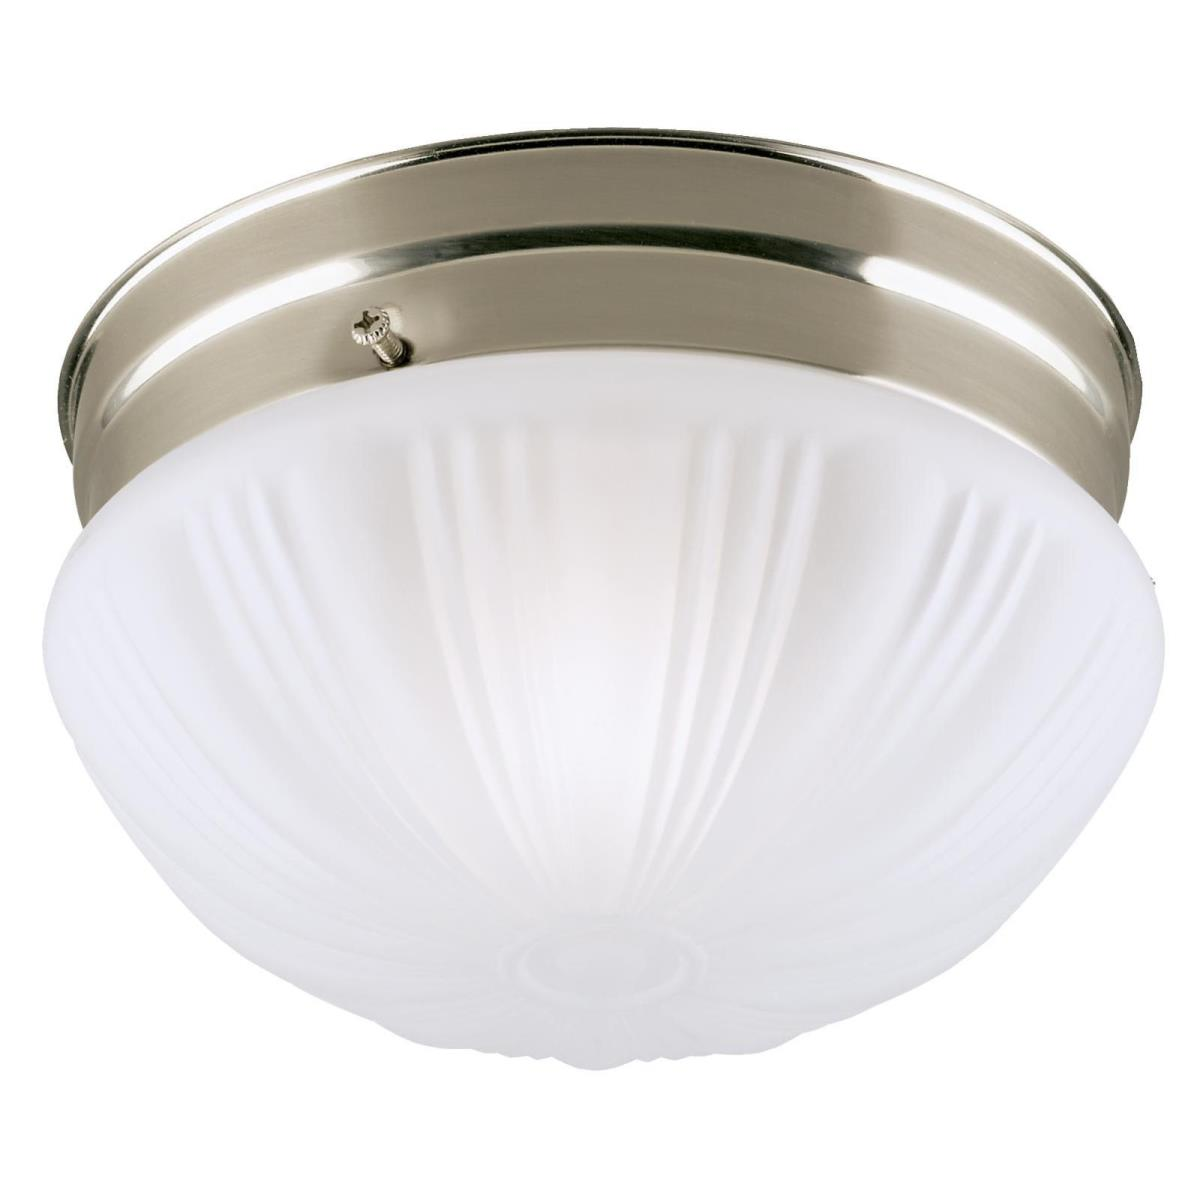 1 Light Flush Brushed Nickel Finish with Frosted Fluted Glass